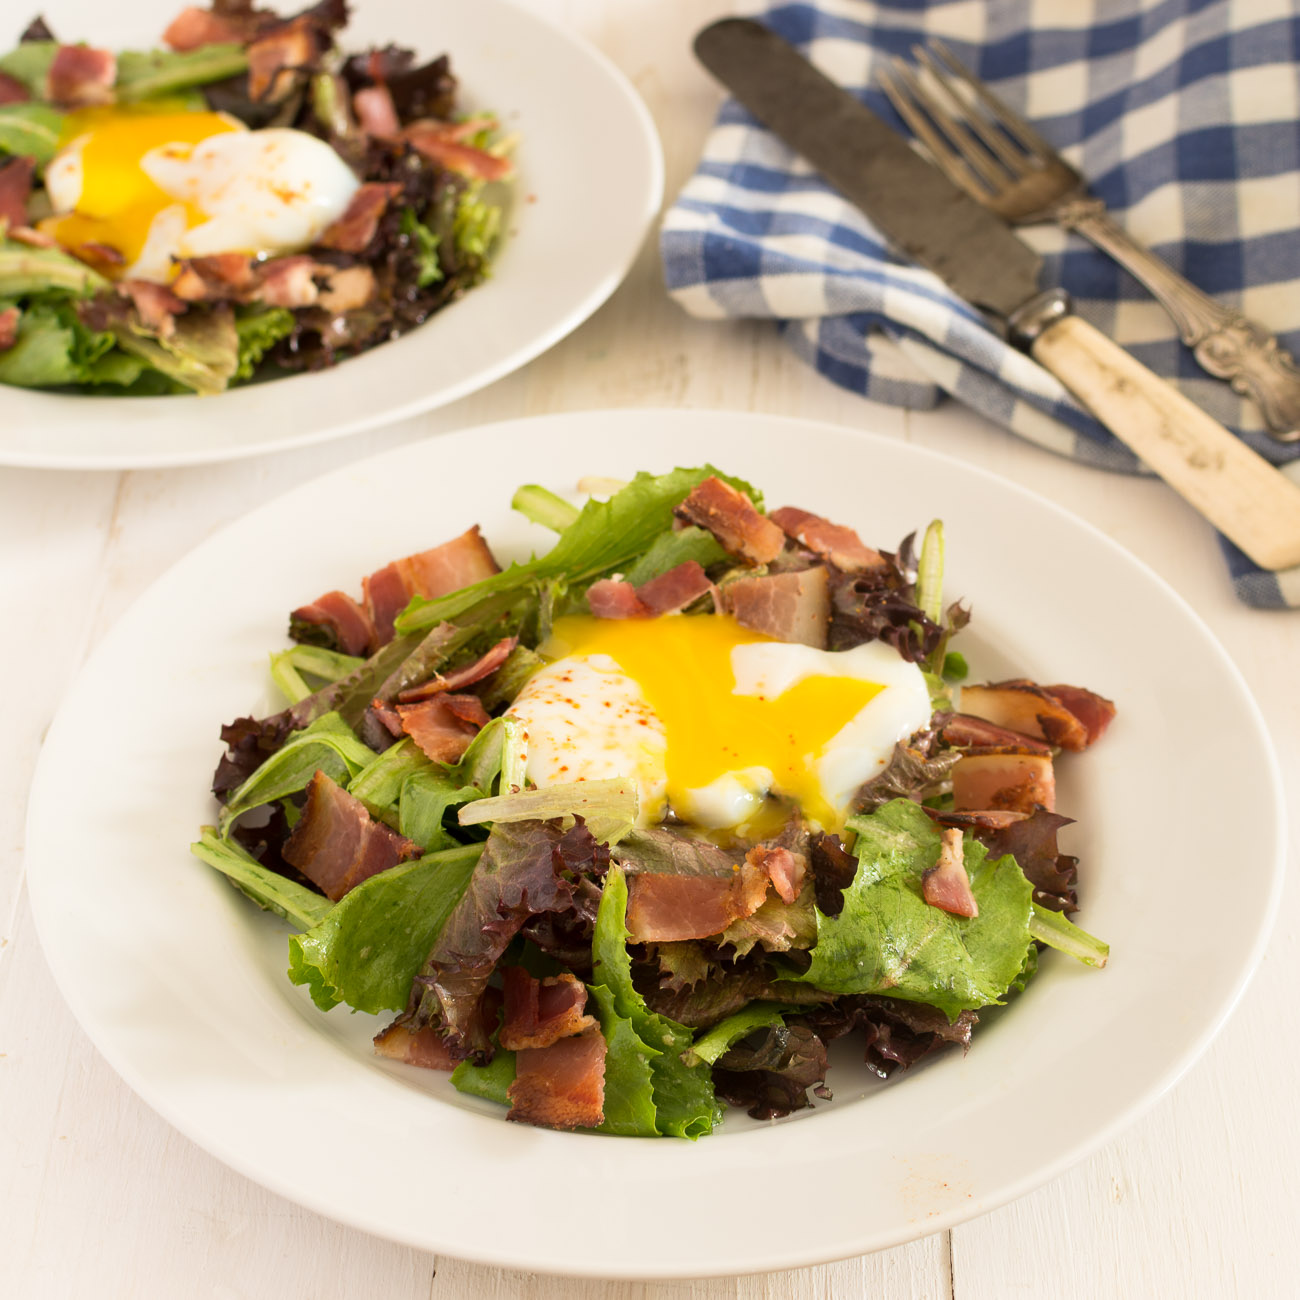 Salade lyonnaise is a classic French salad with poached egg and bacon.